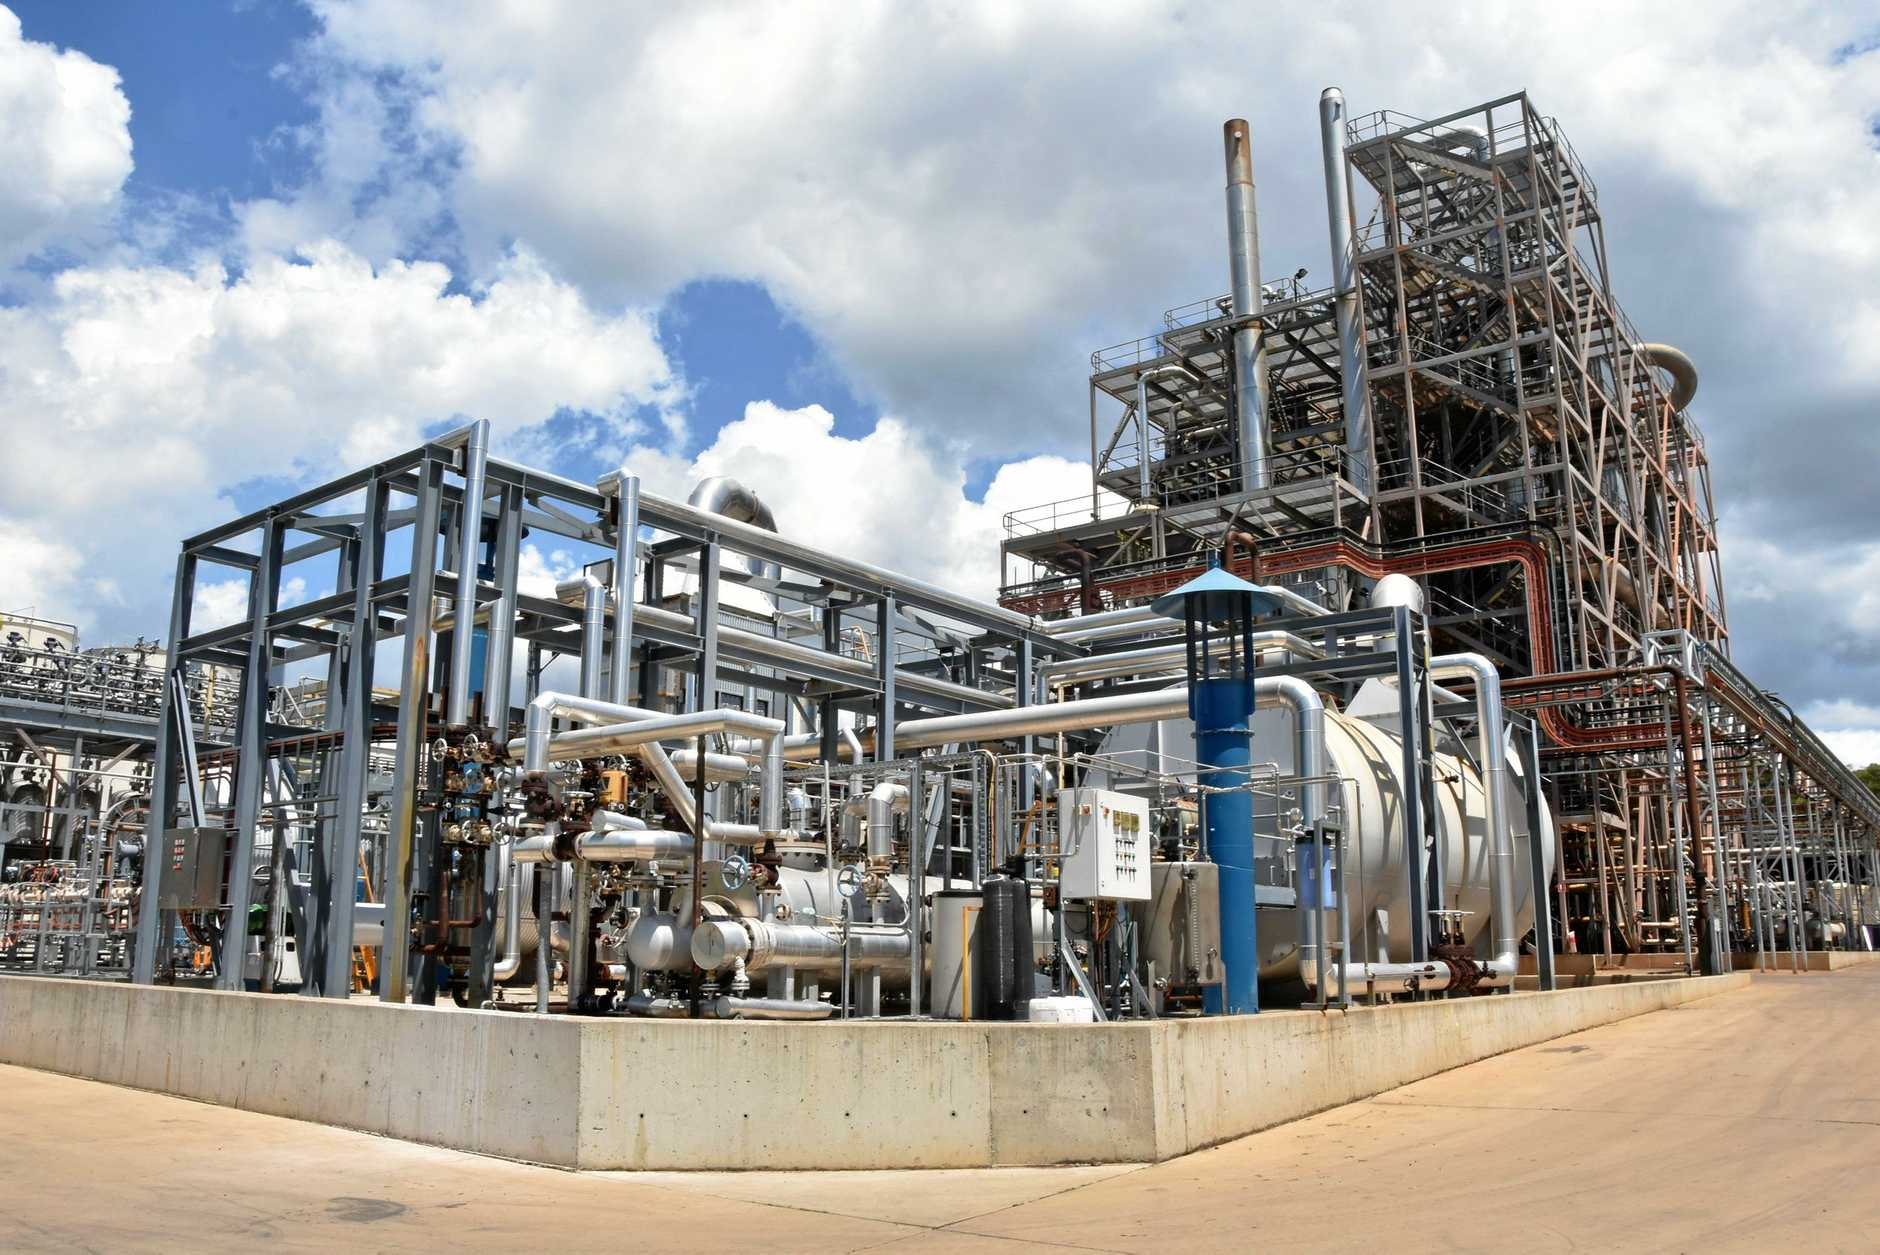 INNOVATE: The Northern Oil Refinery at Yarwun is currently experimenting with hydrogen technology.